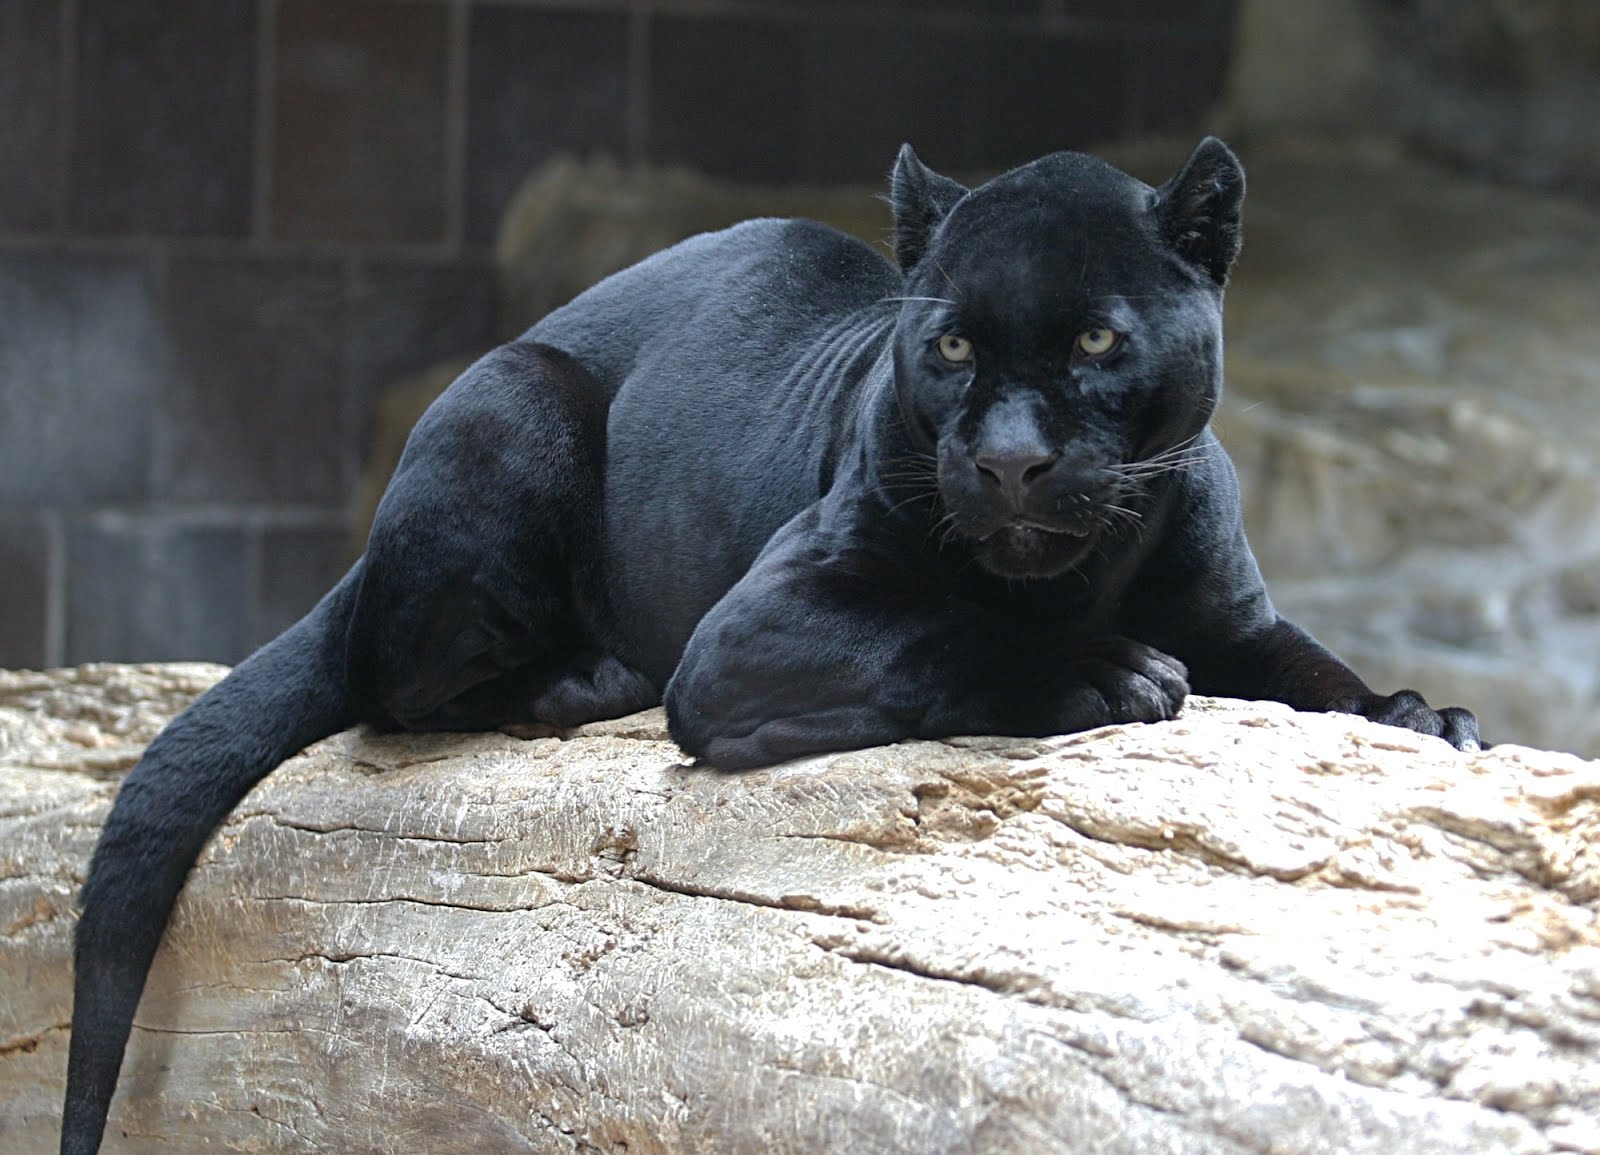 ShukerNature  THE TRUTH ABOUT BLACK PUMAS   SEPARATING FACT FROM